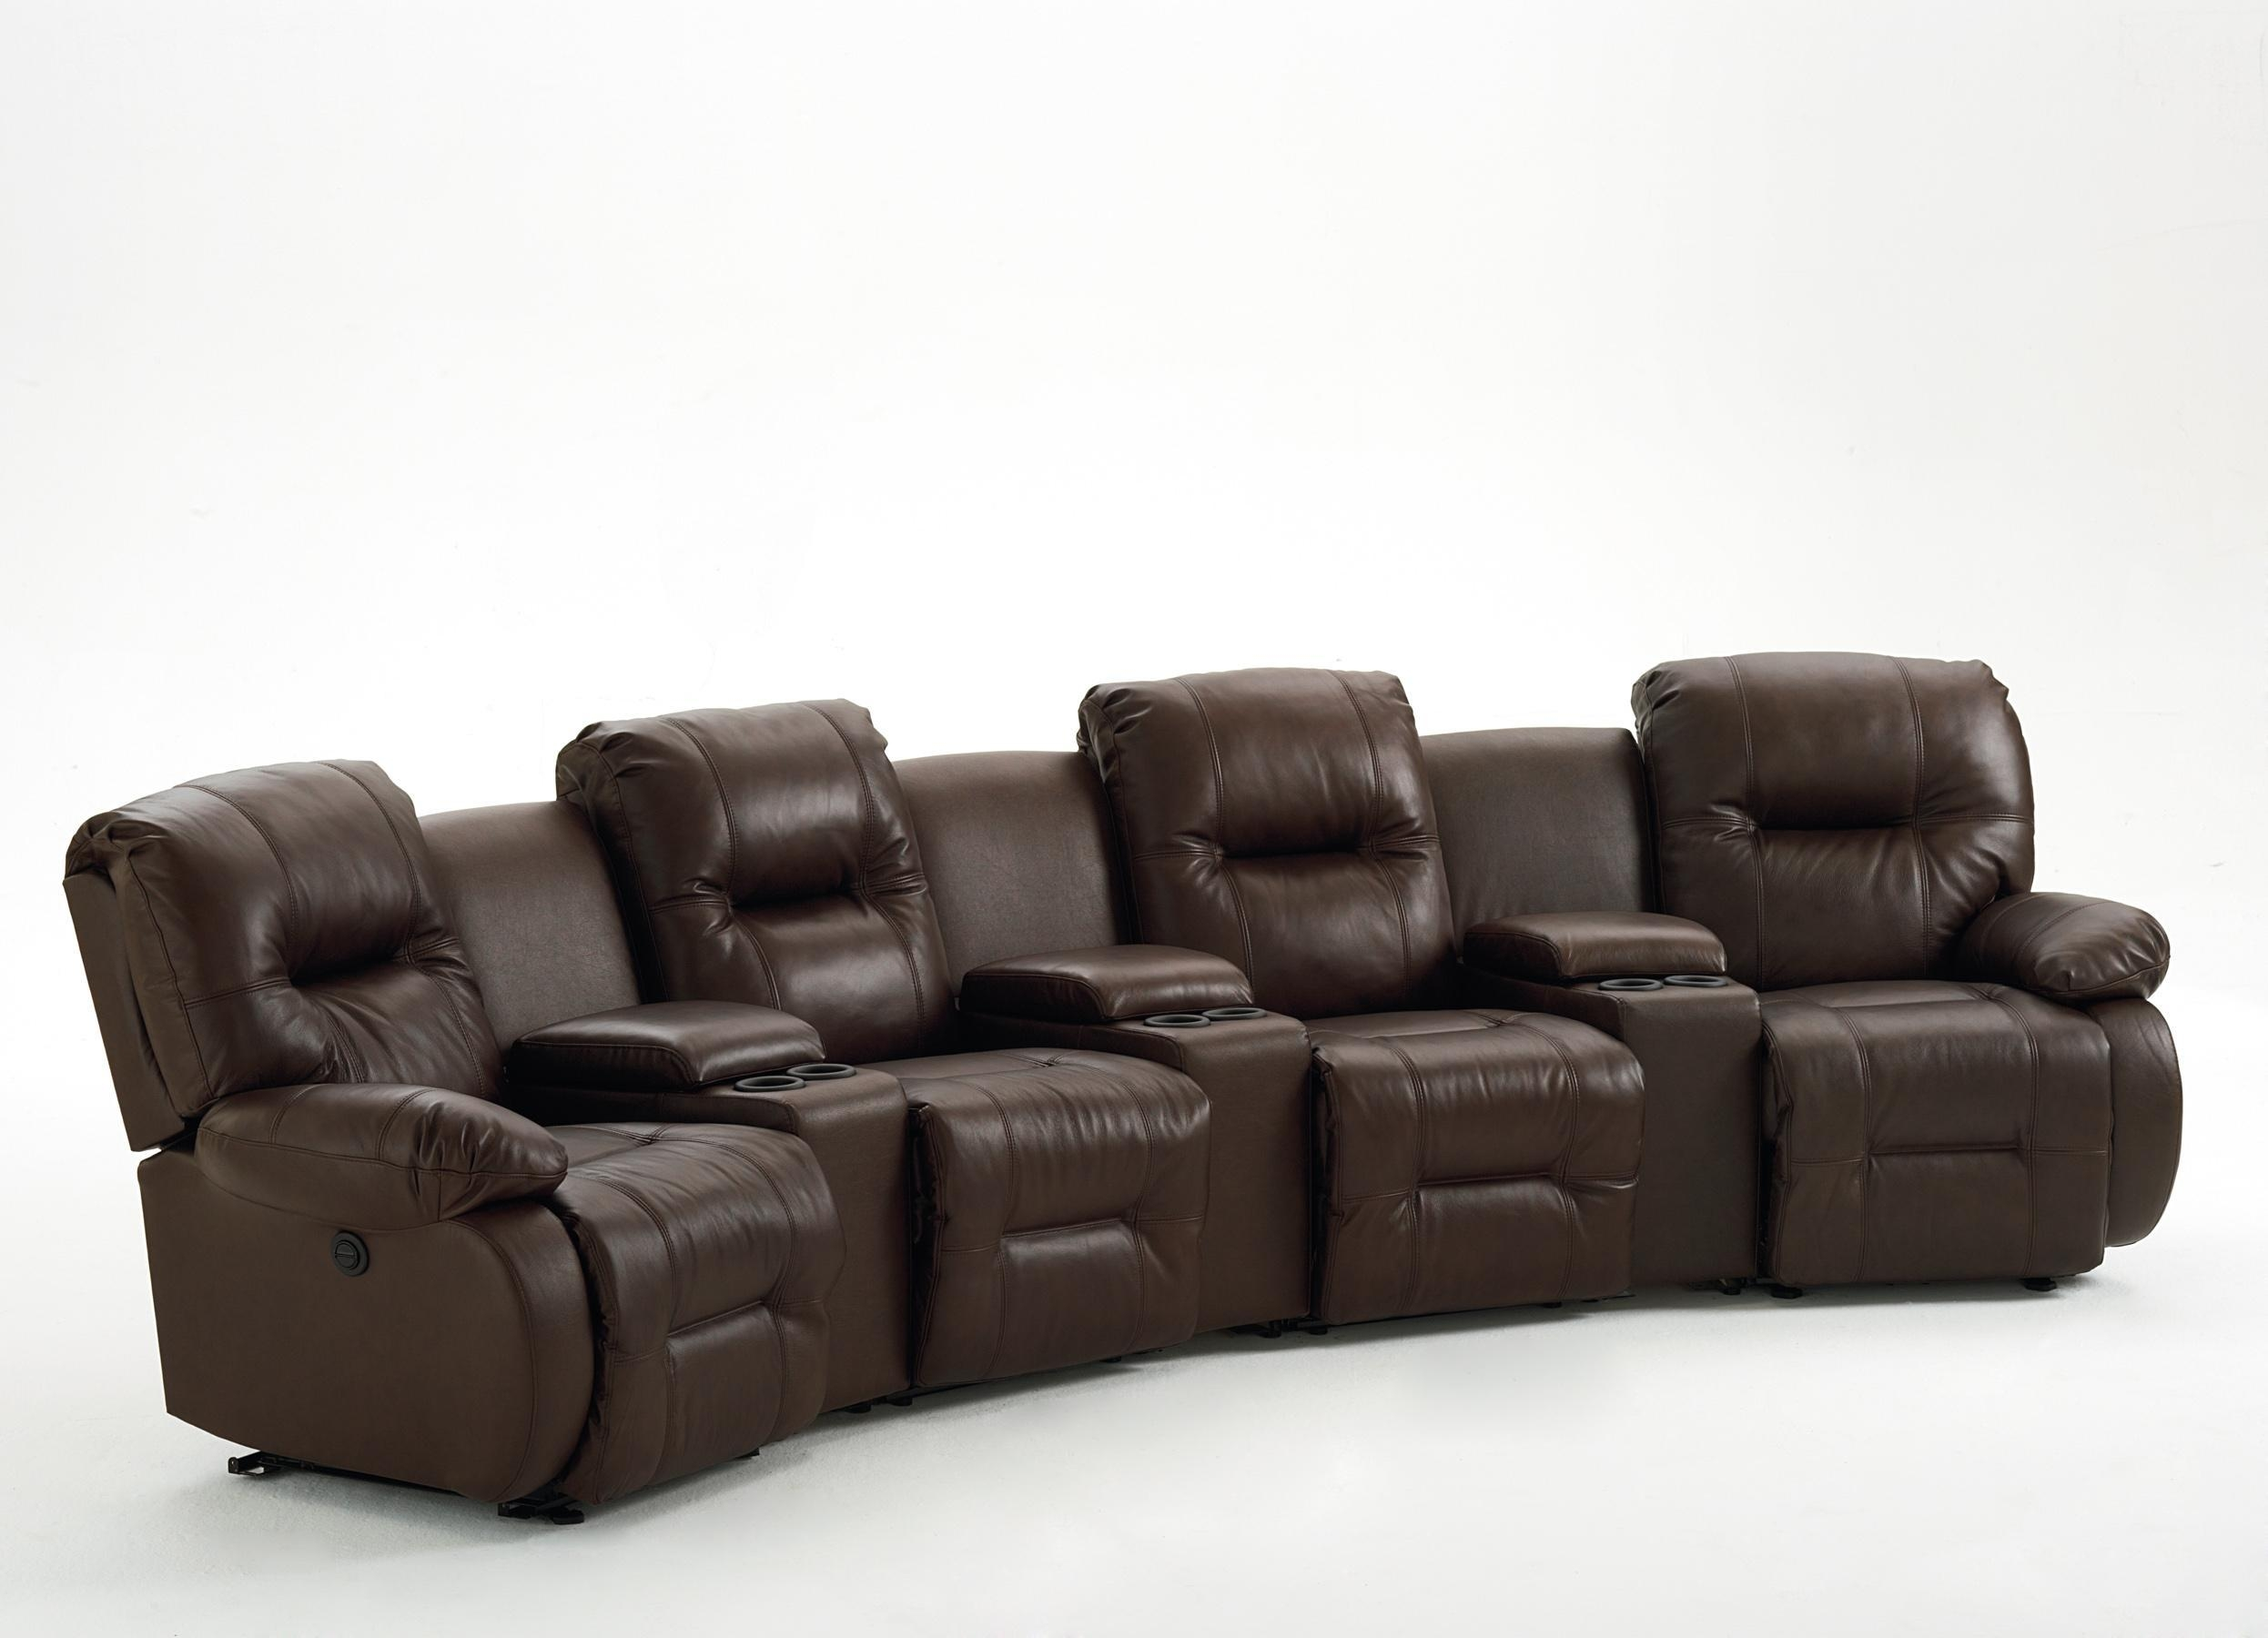 Seven Piece Power Reclining Home Theater Group With Three Drink For Sofas With Drink Holder (View 8 of 20)